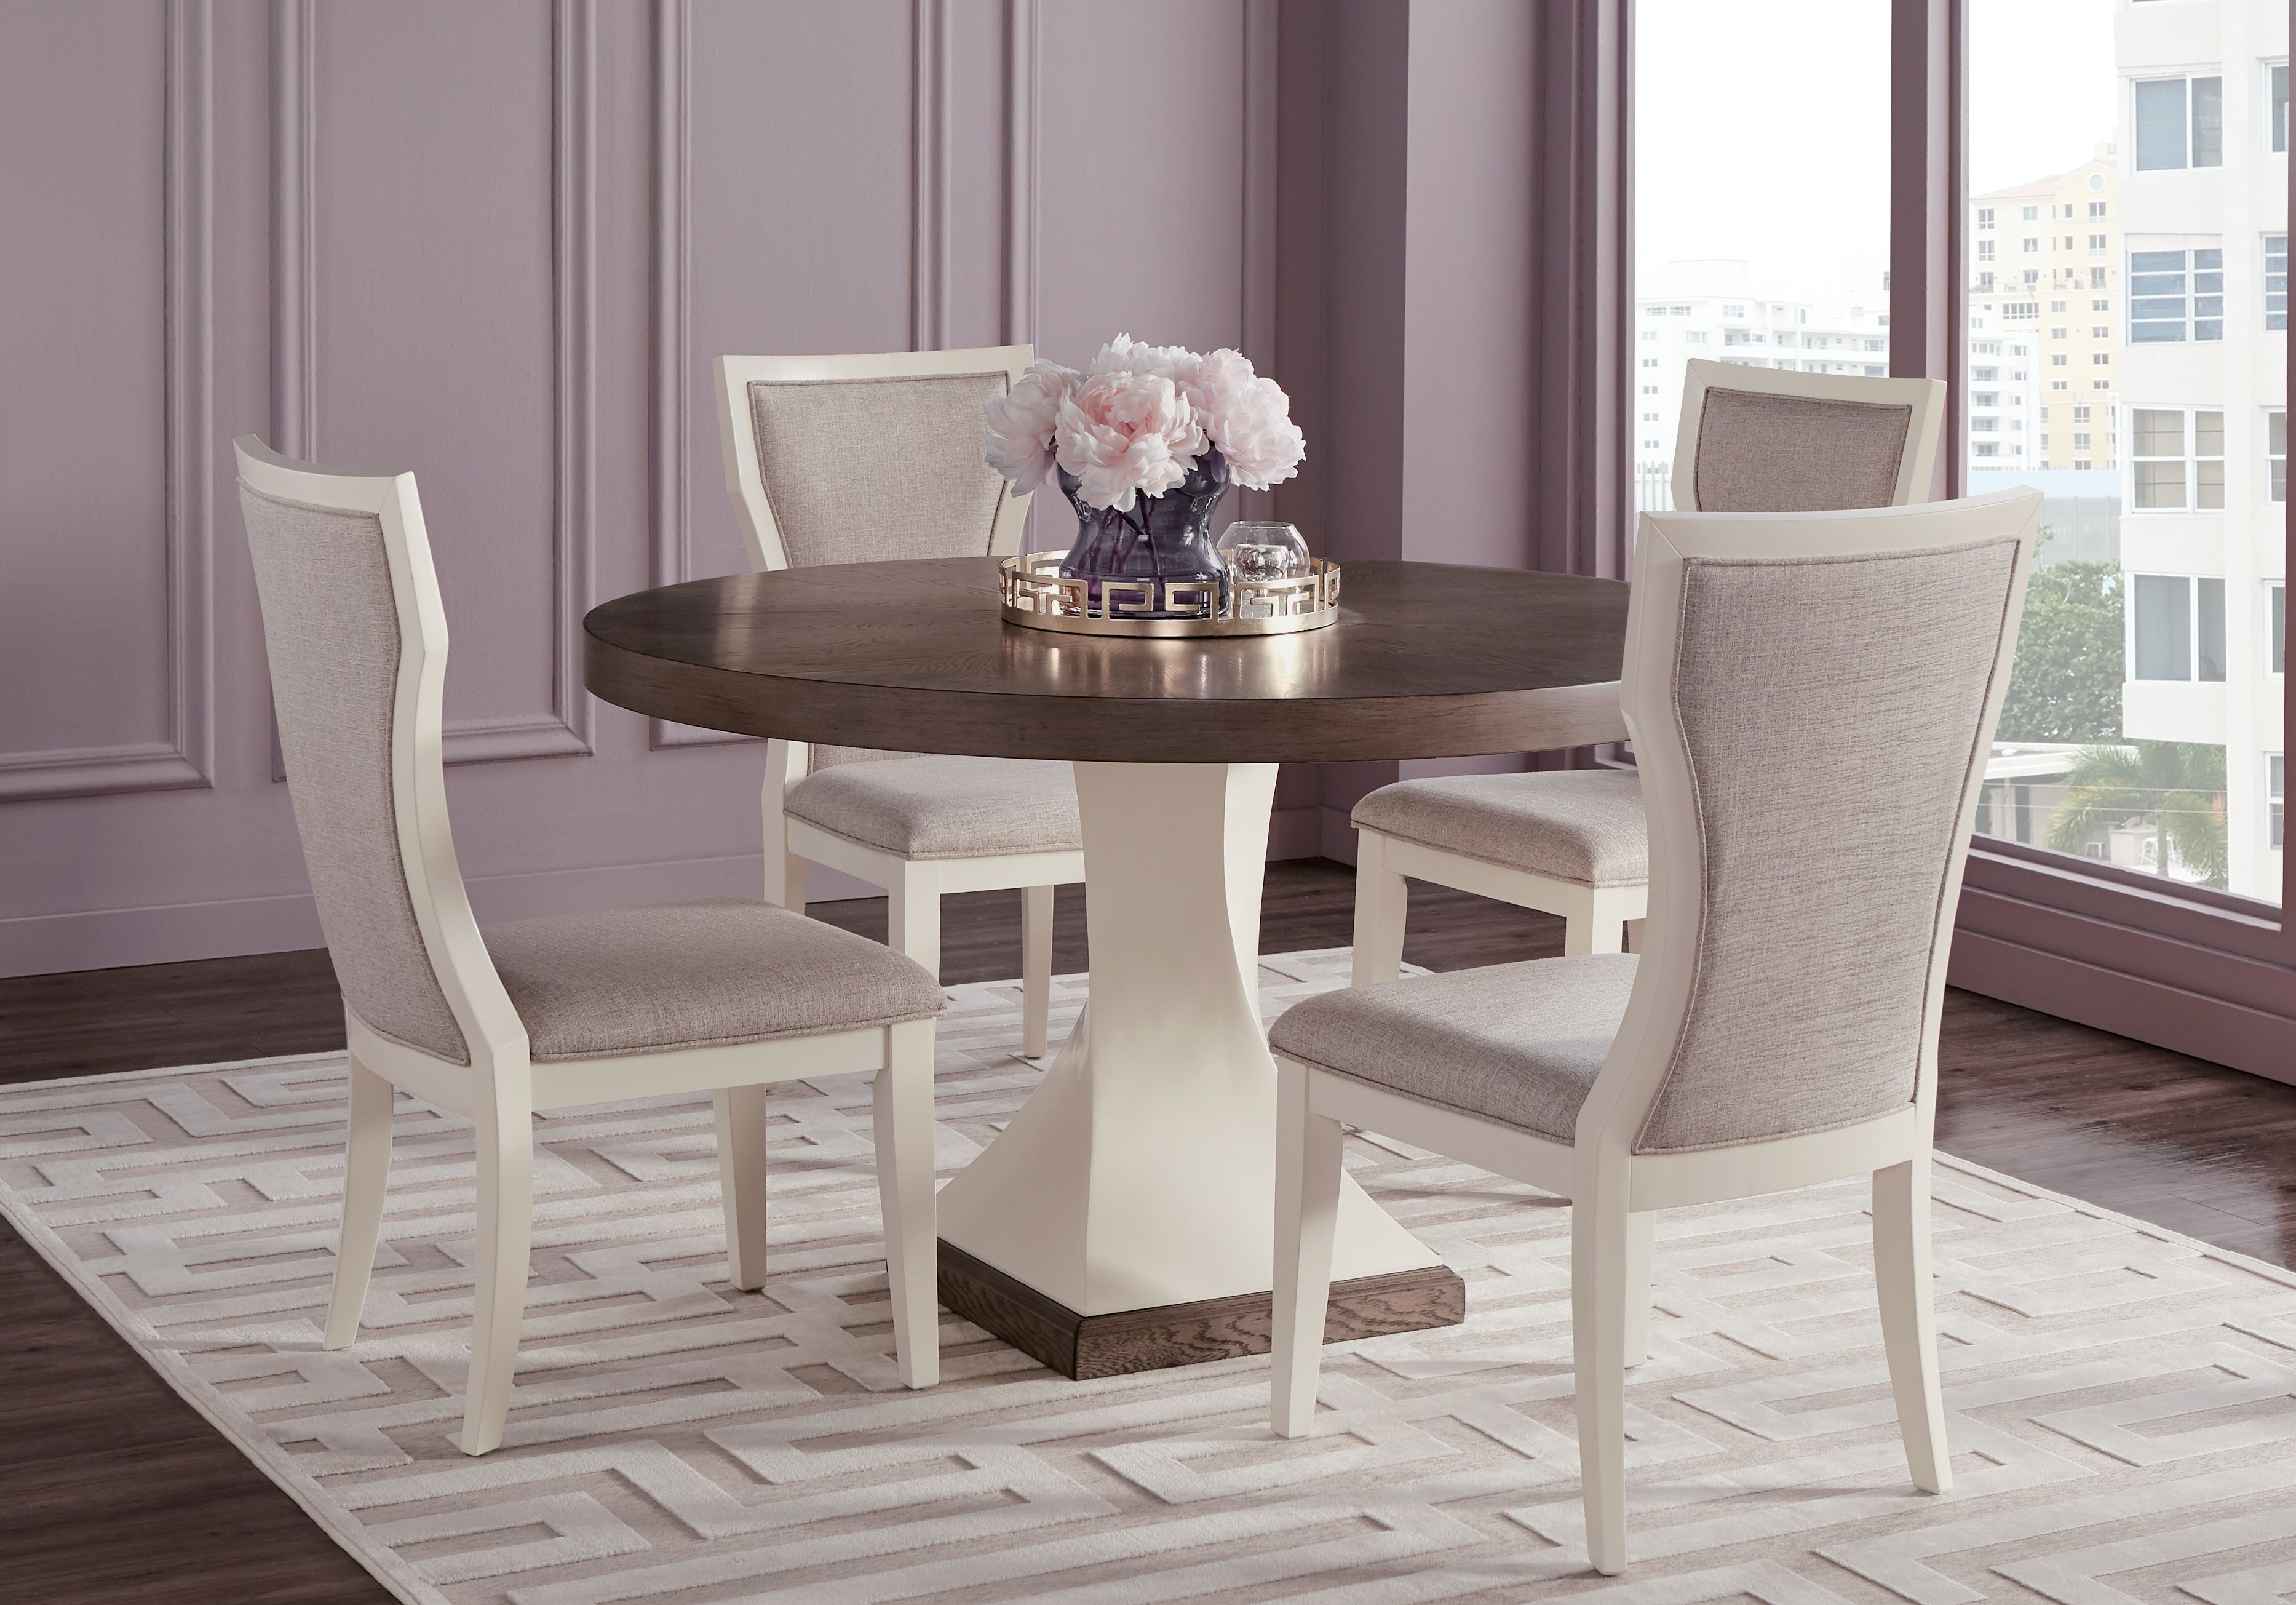 Well Known Lamotte 5 Piece Dining Sets Inside Sofia Vergara Santa Fiora White 5 Pc Round Dining Room In  (View 20 of 20)